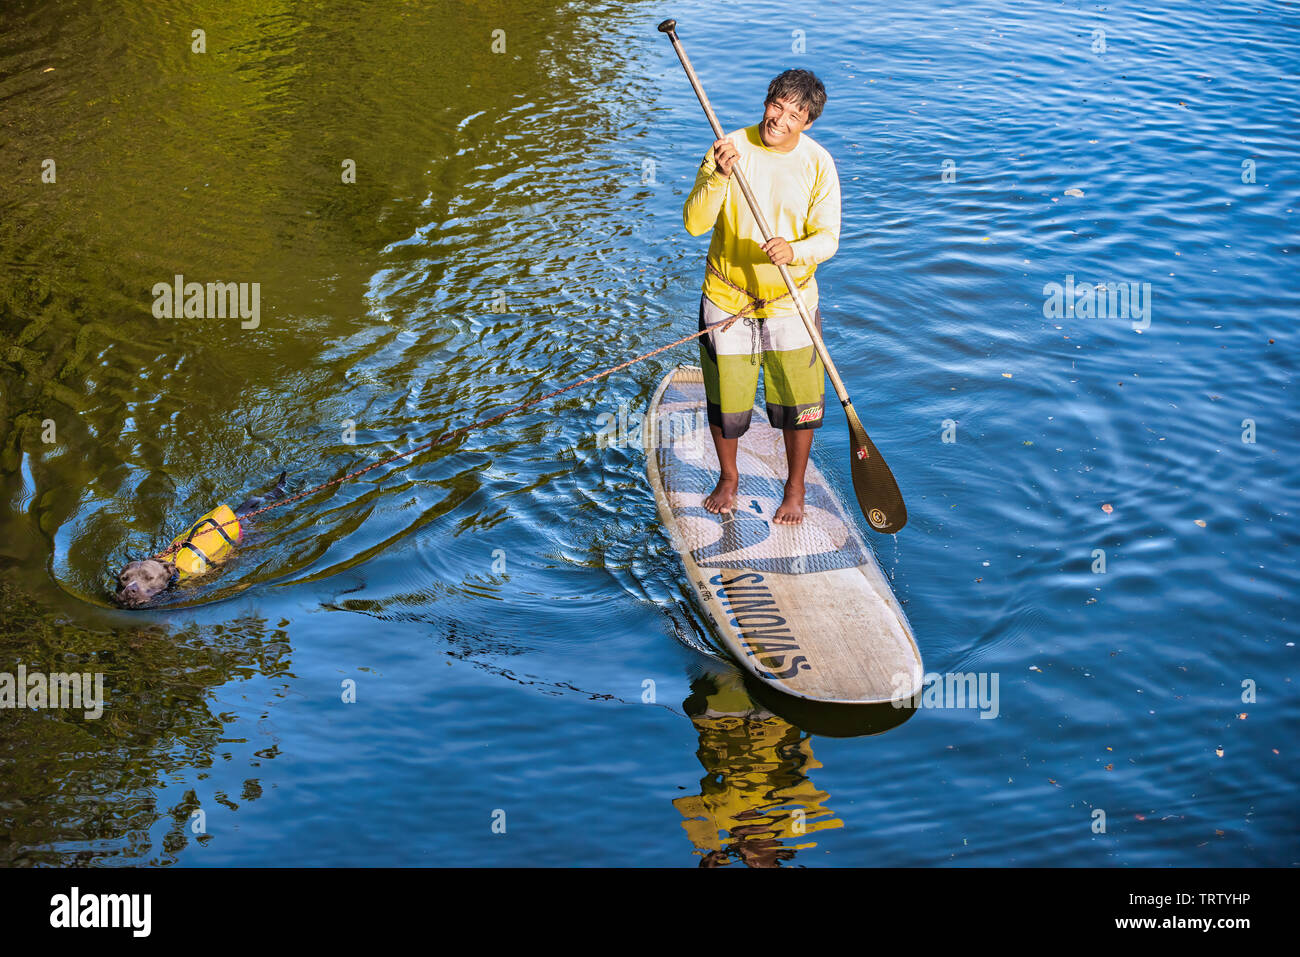 Oahu, Hawaii, USA 10/06/2016.  Man paddle boarding along with dog NorthShore Oahu - Stock Image